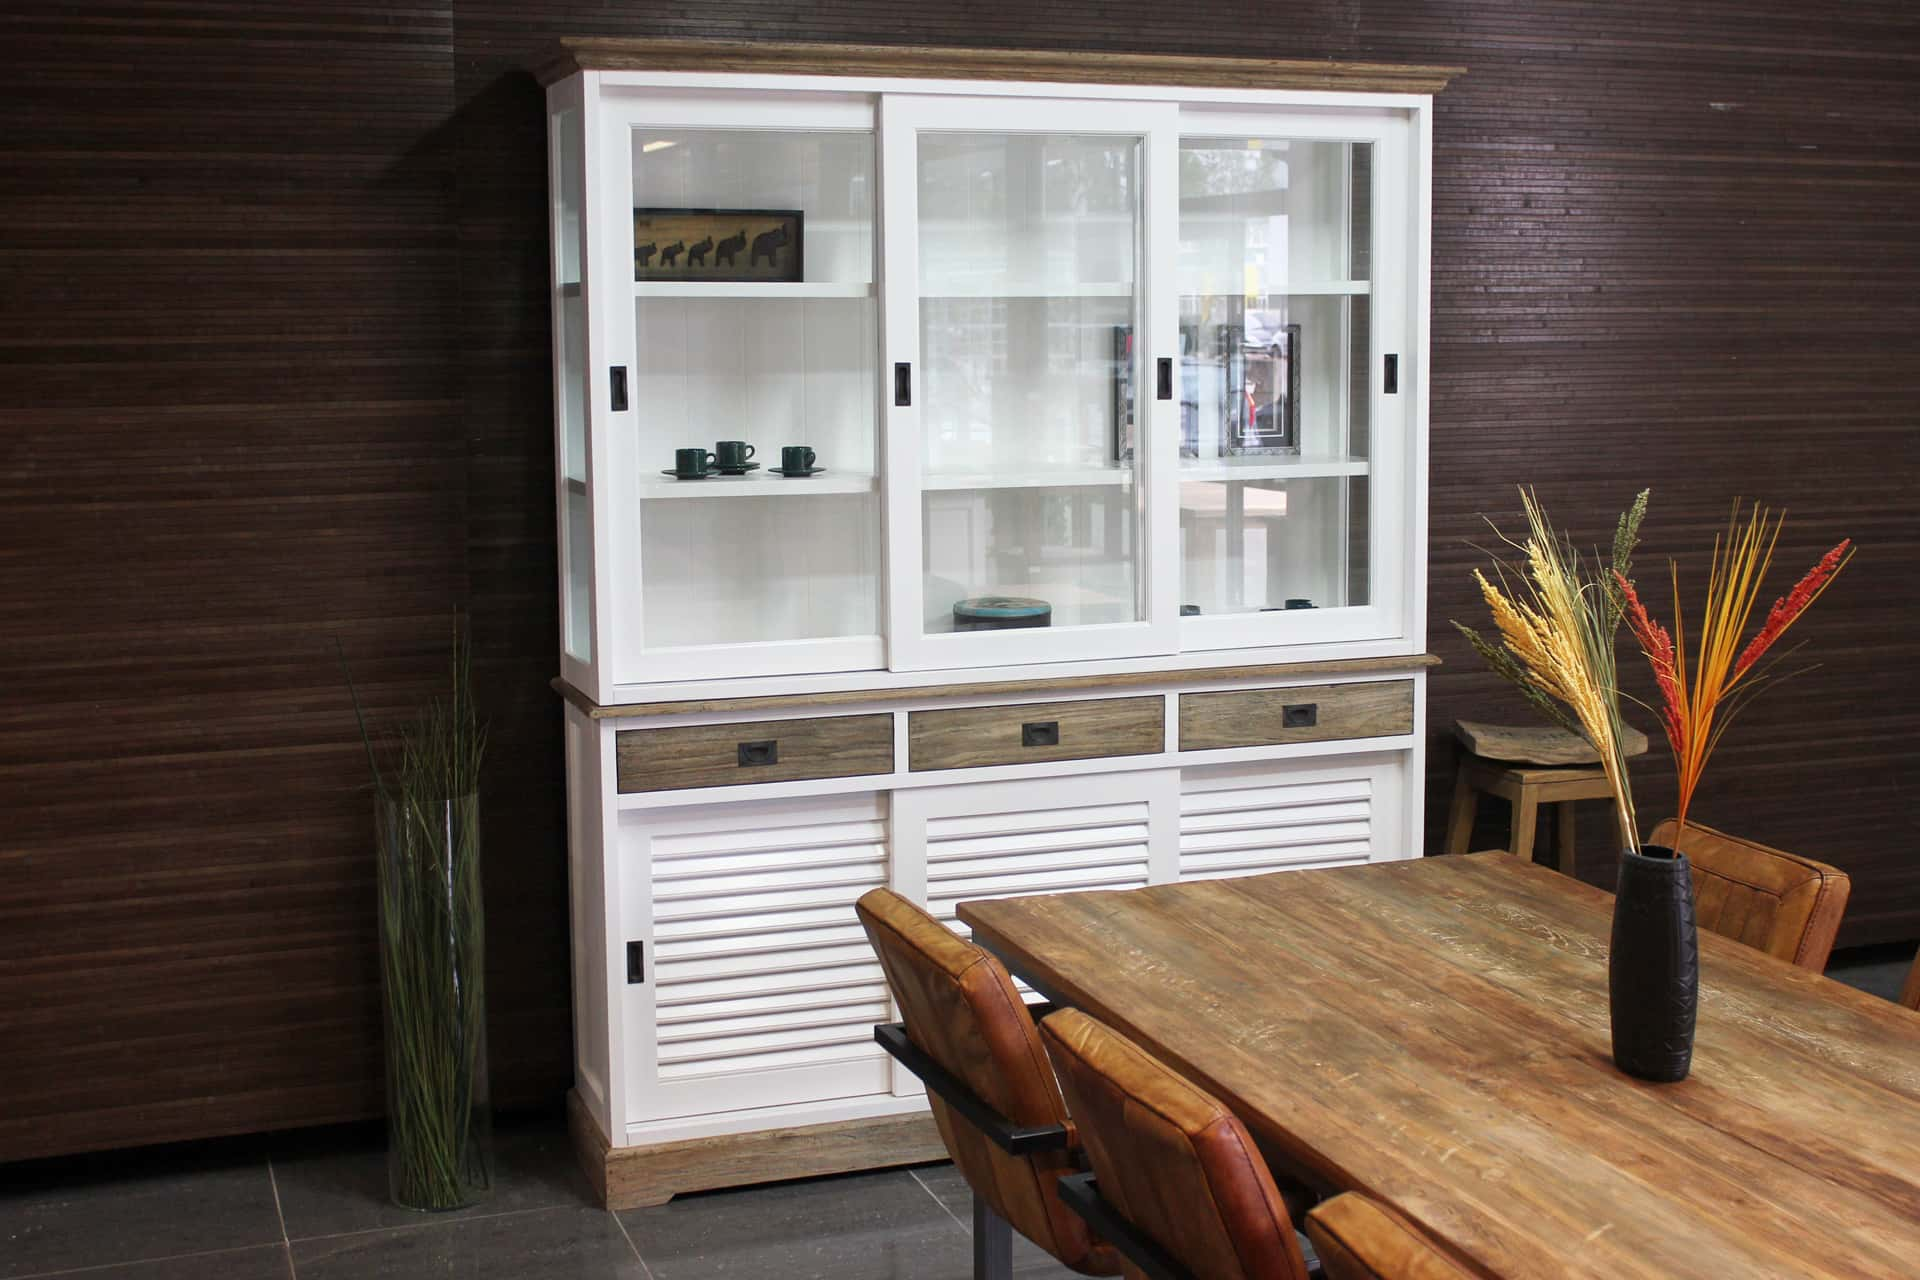 Cerah 180L SW Teak Louvre l rural display cabinet white & teak with louvre doors. Luxurious white buffet cabinet with teak, modern & rural style - TEAK2.